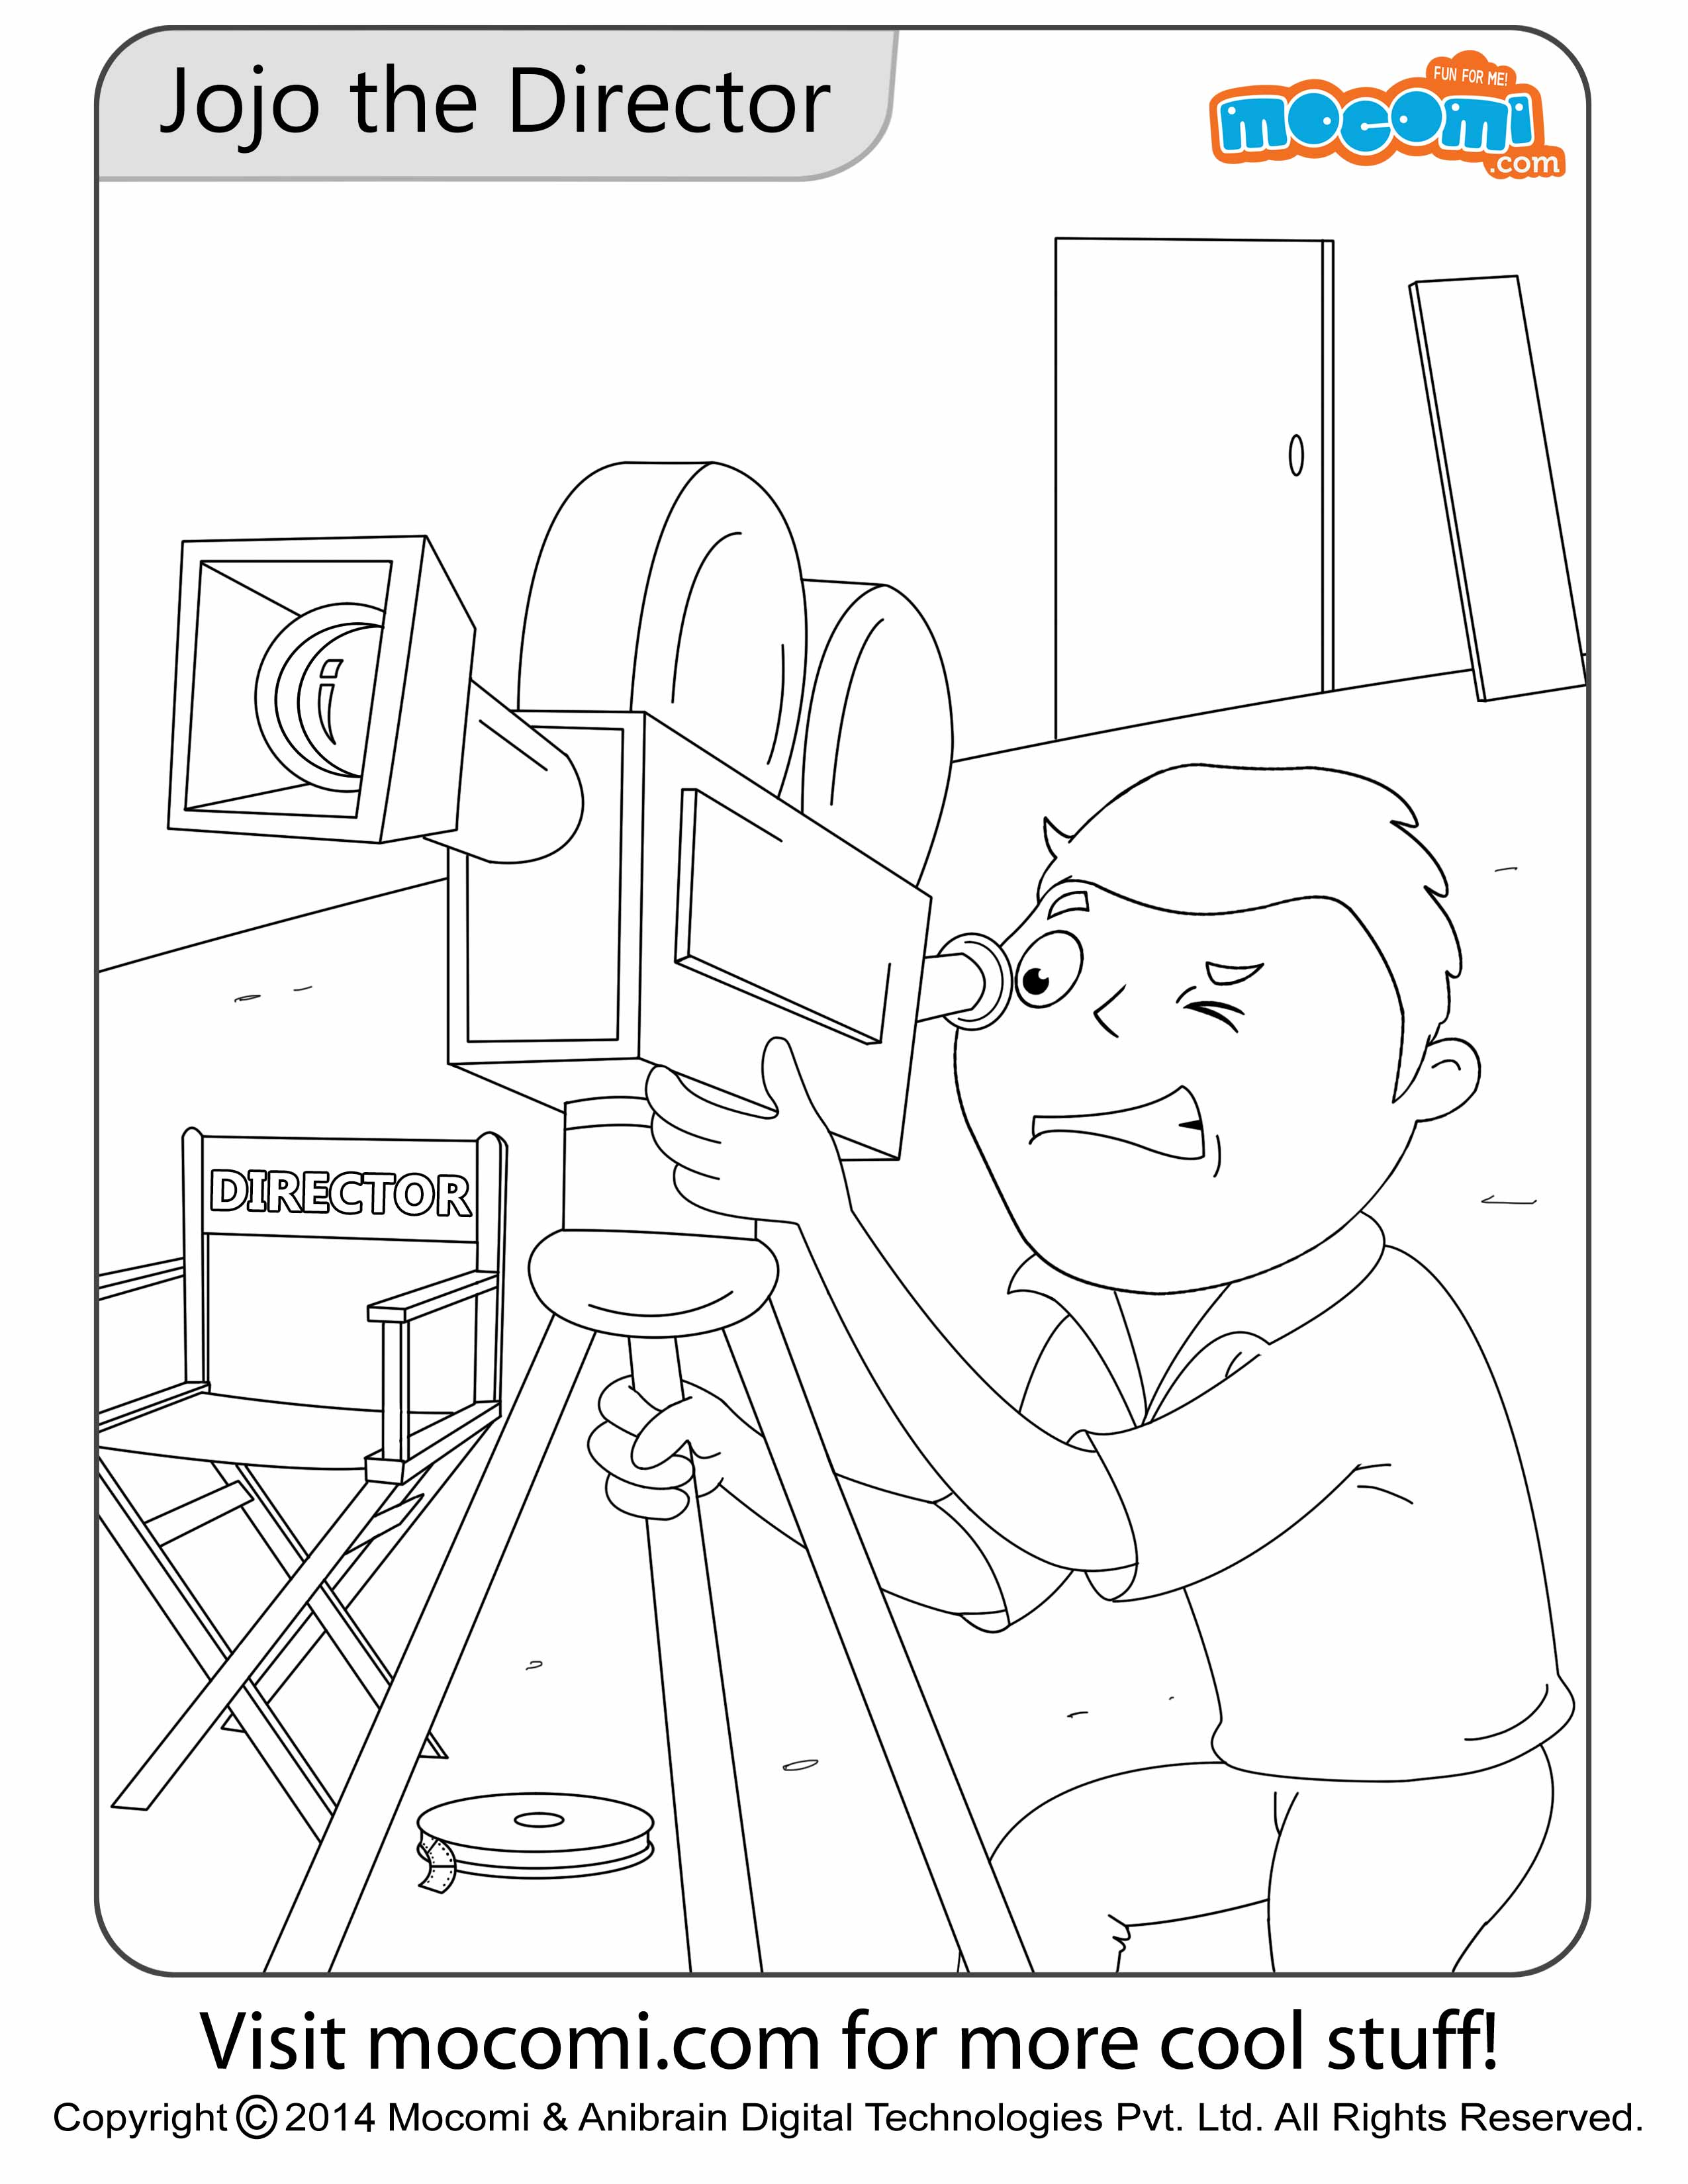 Jojo the Director – Colouring Page